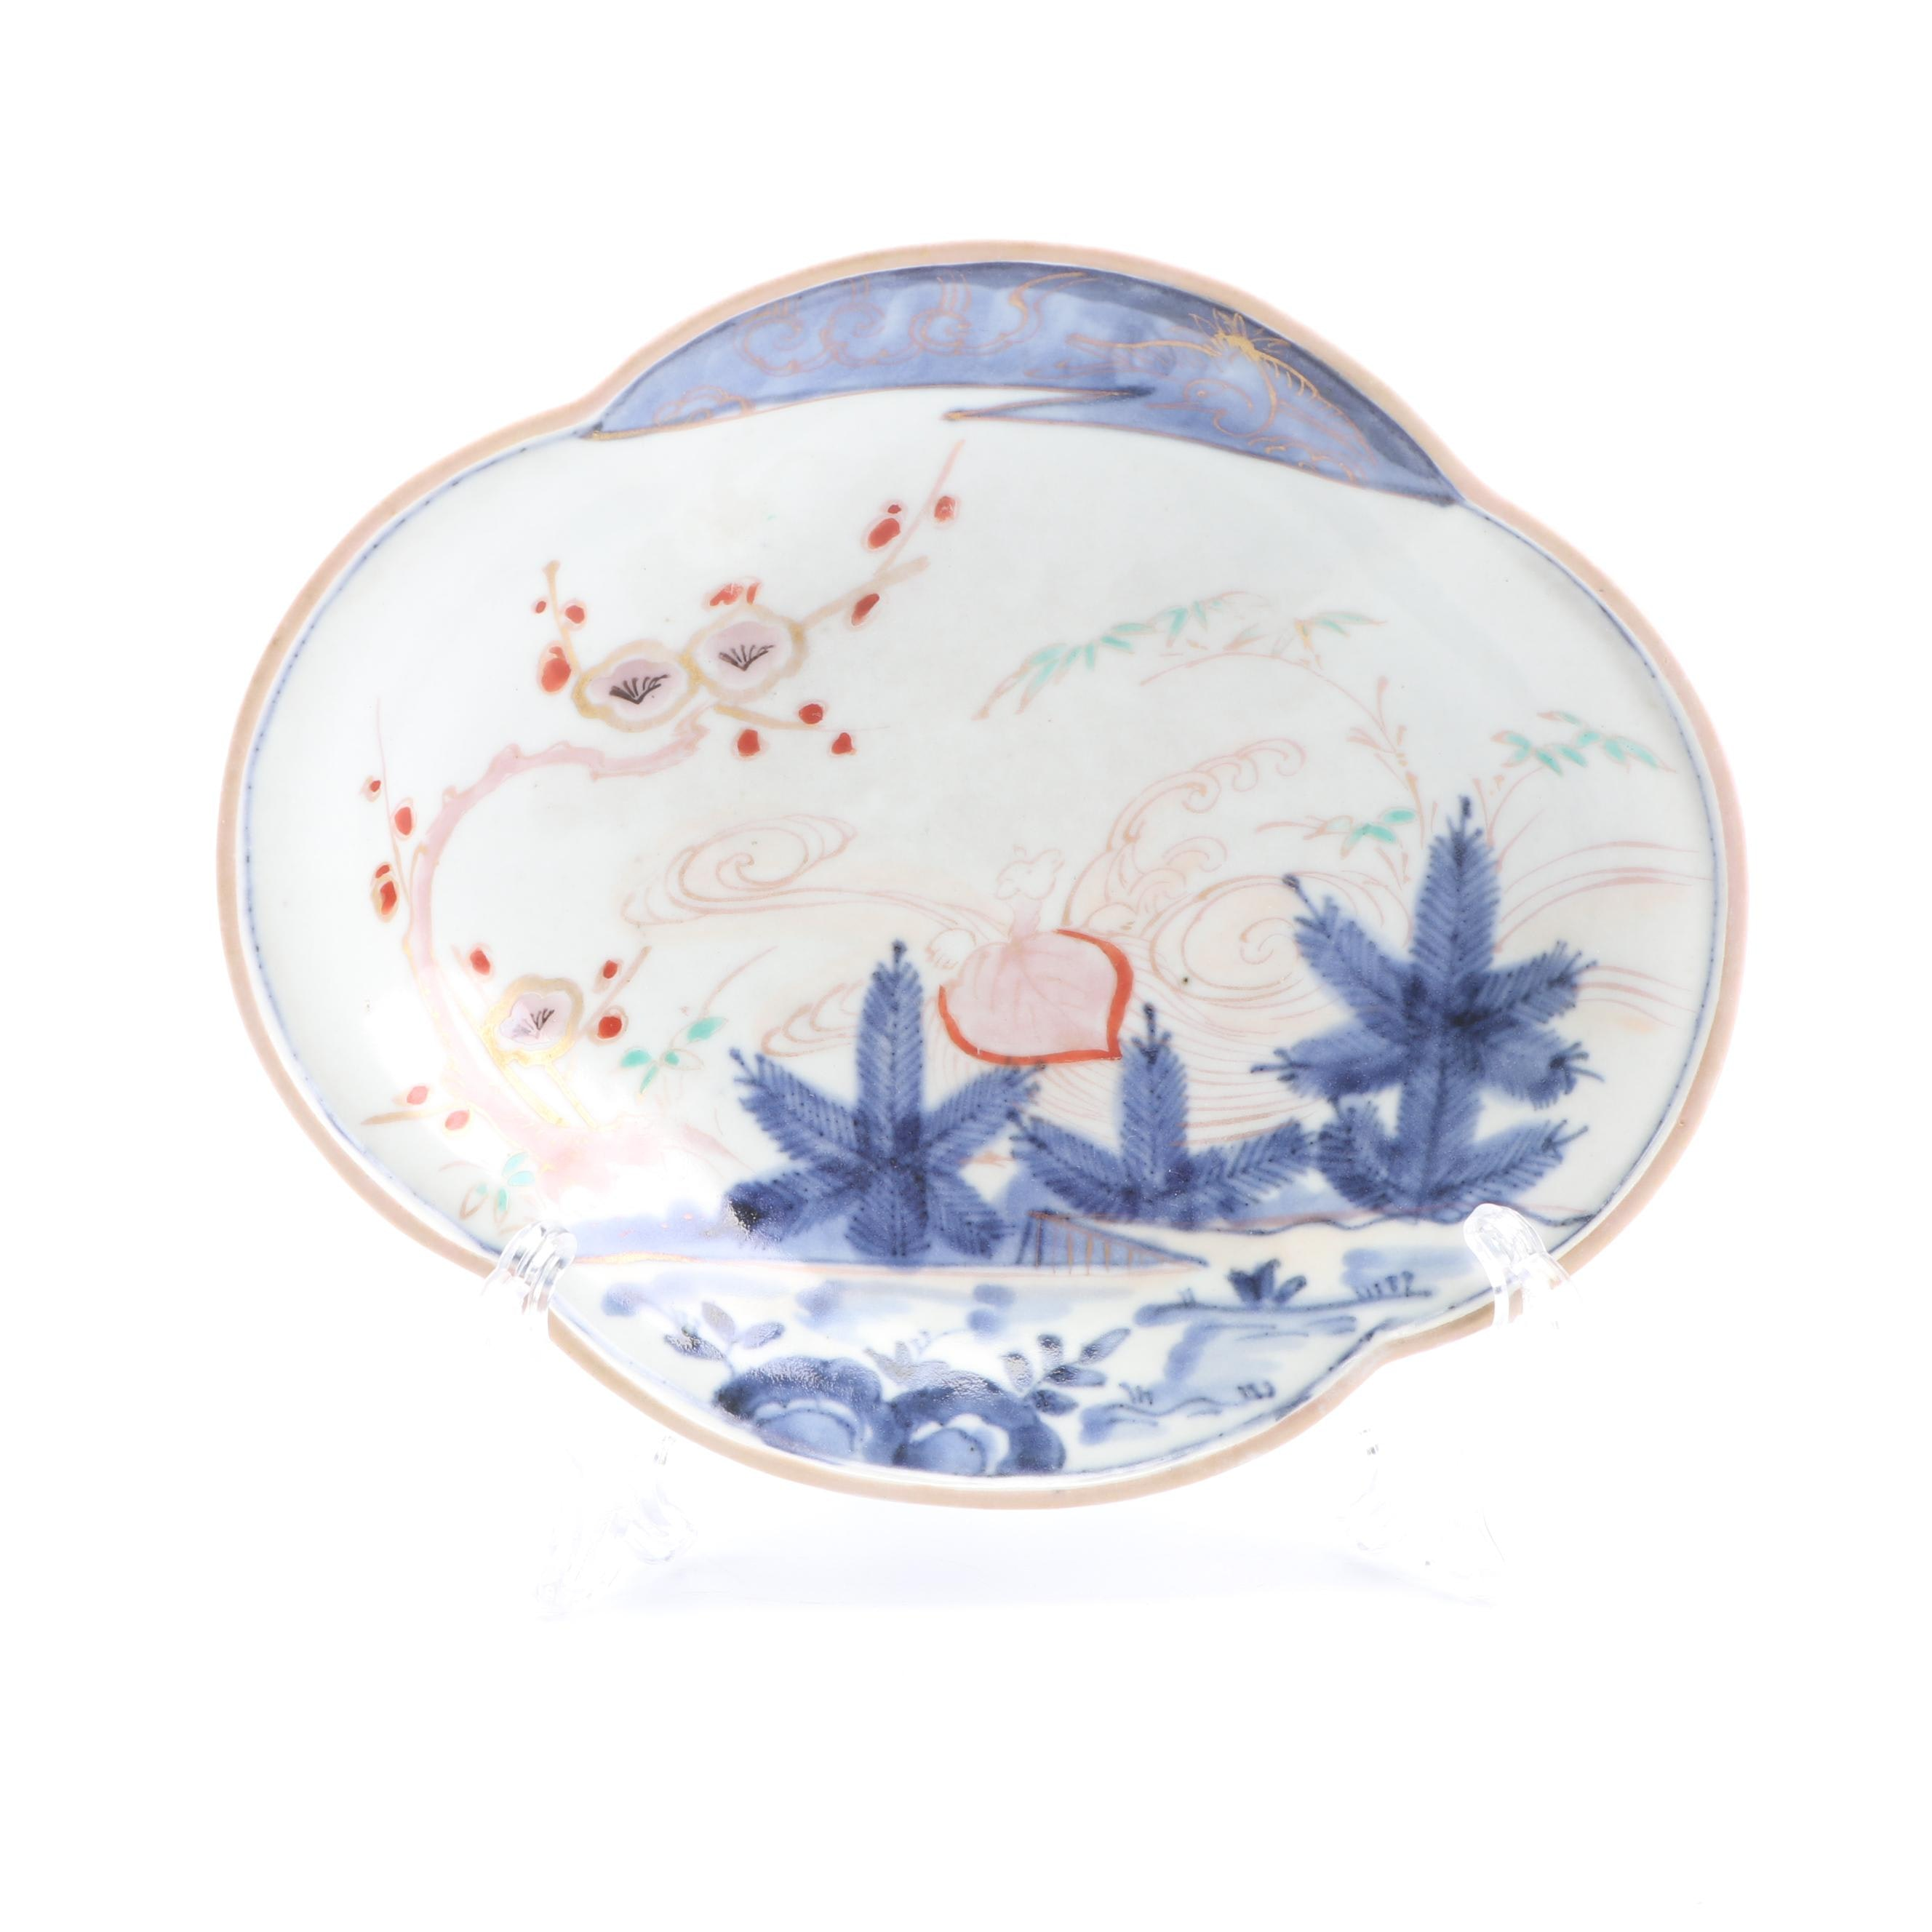 Japanese Imari Style Porcelain Bowl, 19th Century